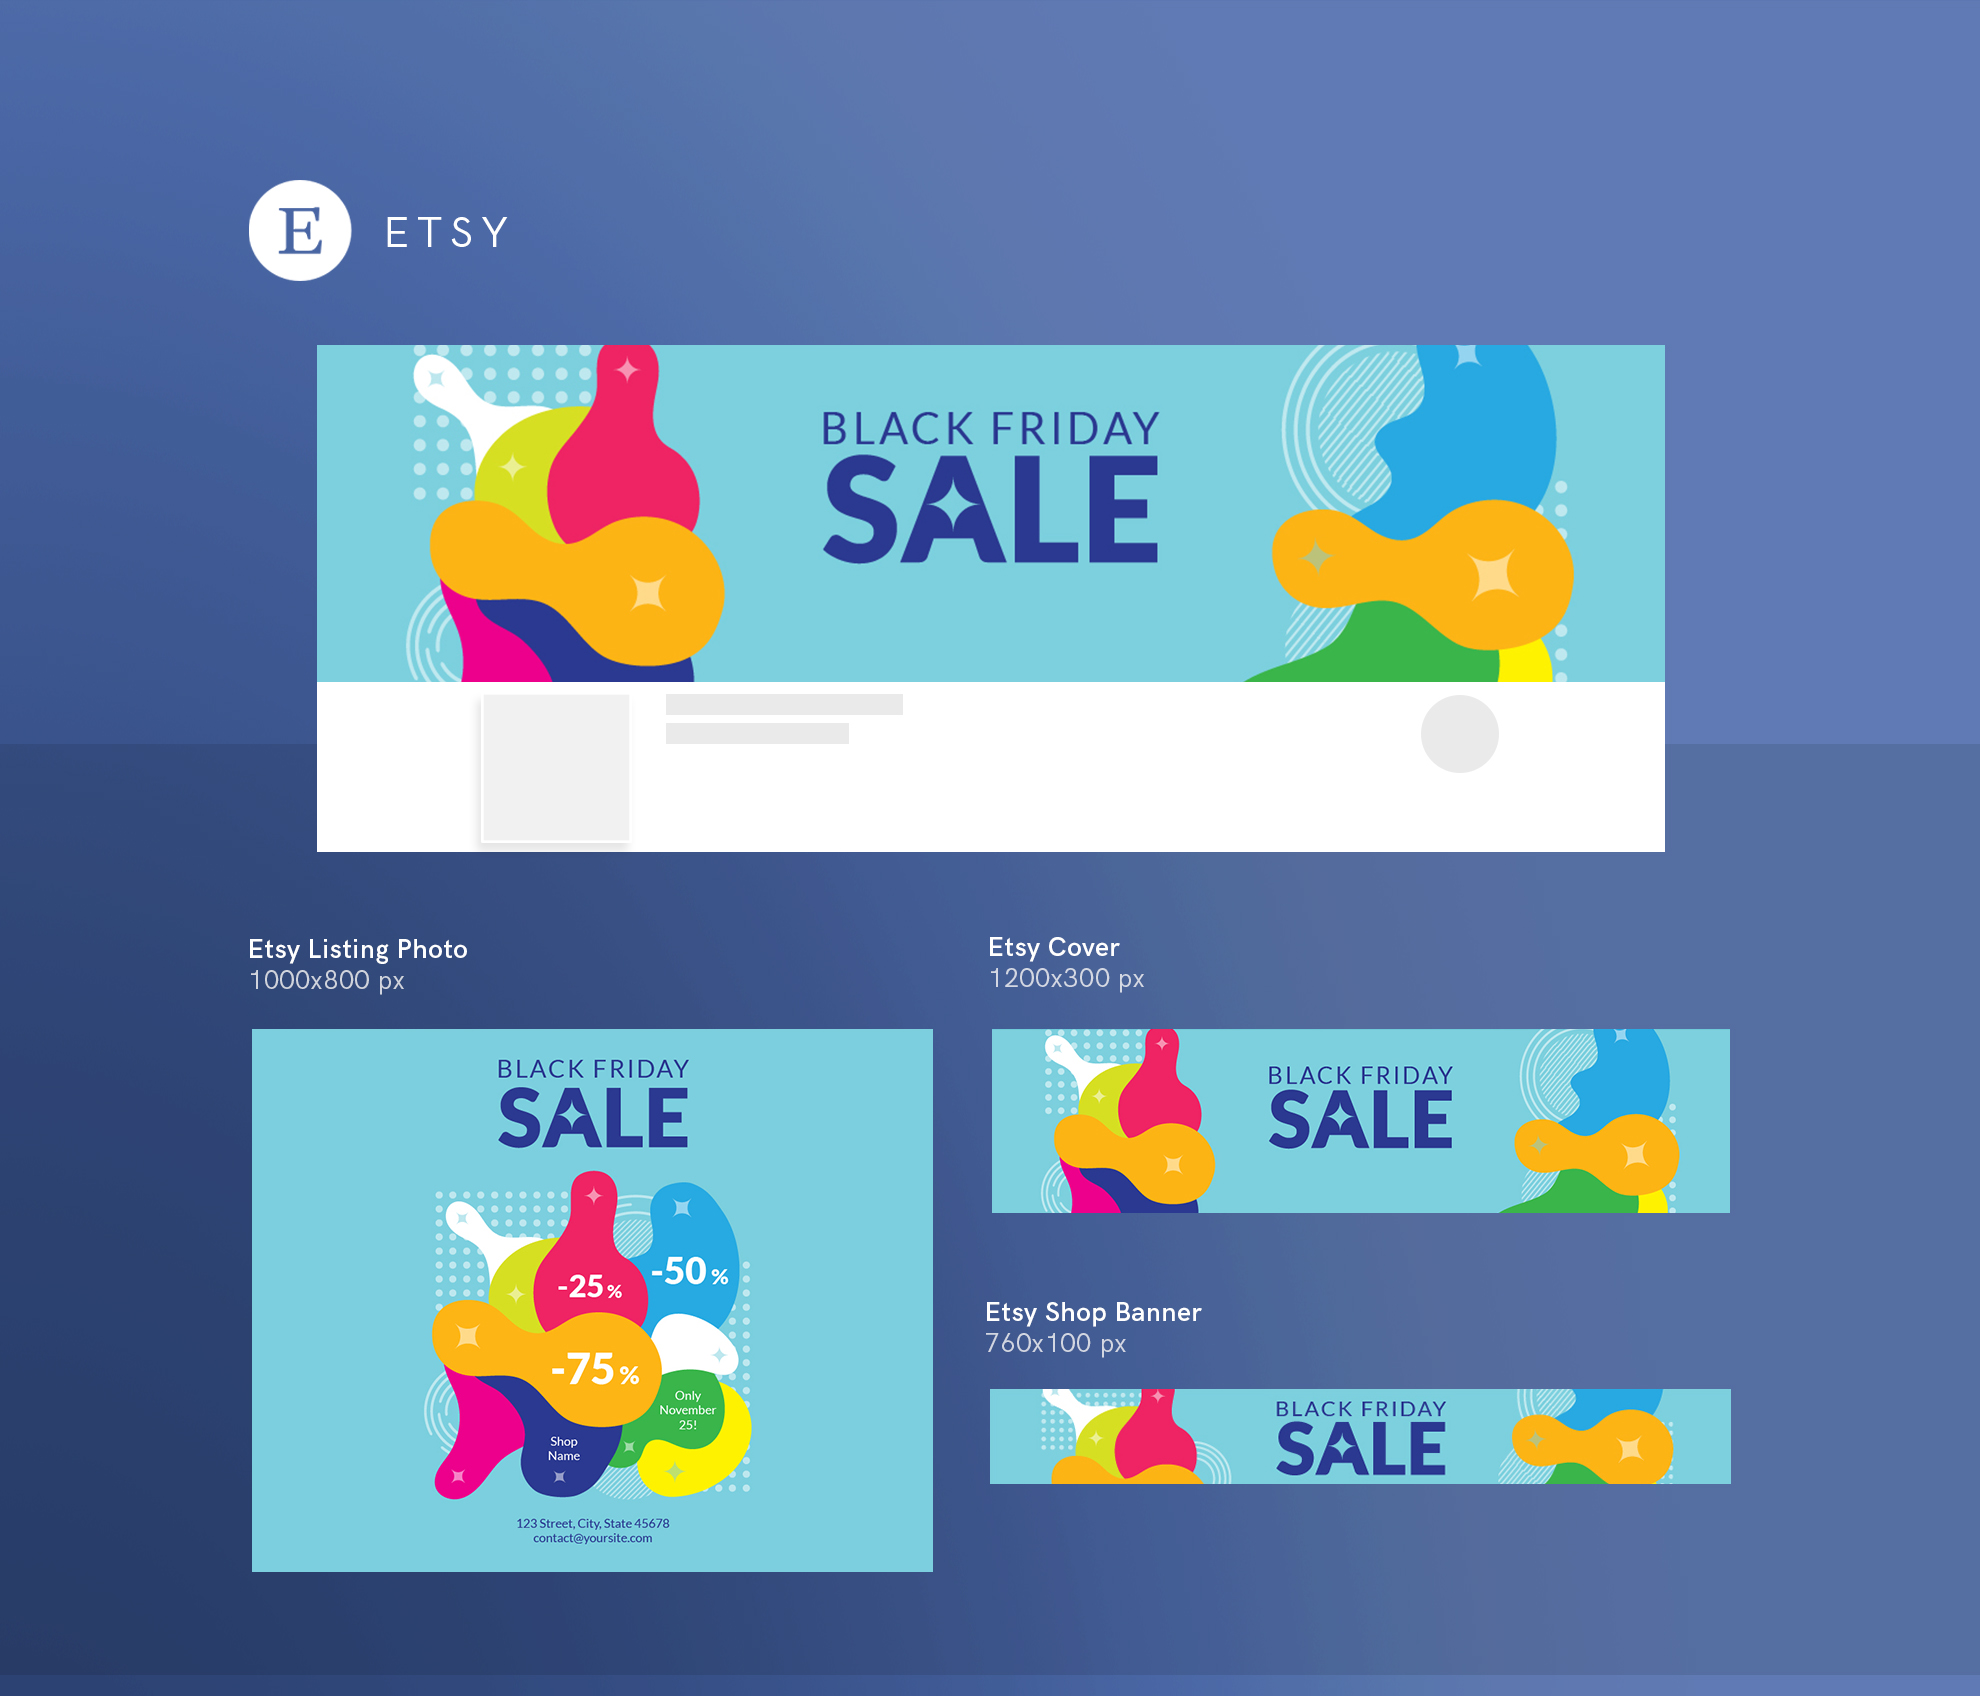 Black Friday Sale Design Templates Bundle example image 14